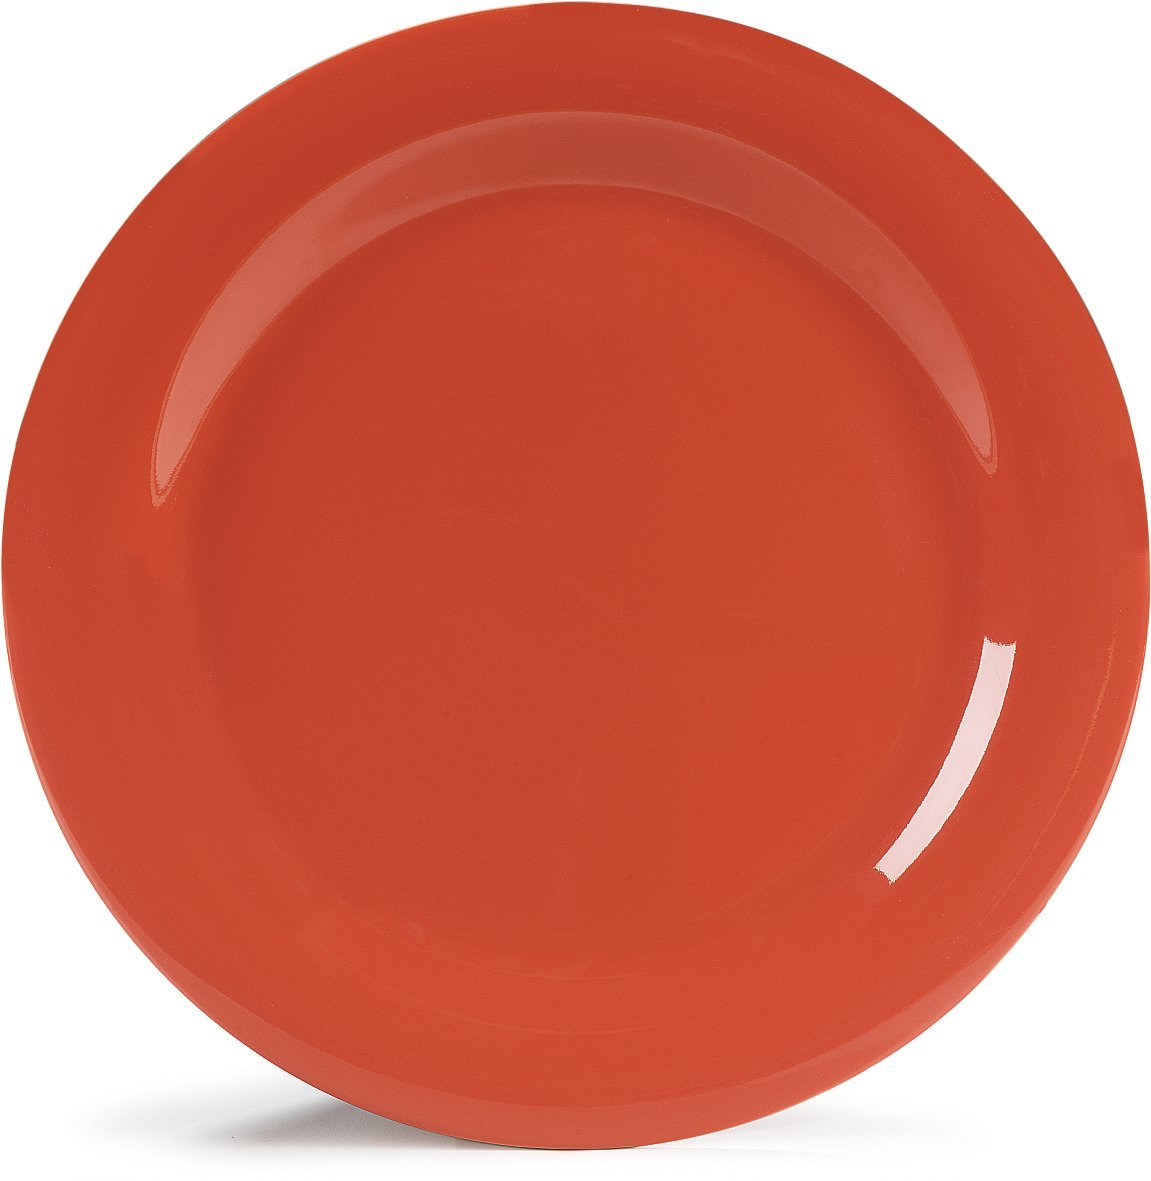 Carlisle 4300252 Durus Narrow Rim Melamine Dinner Plate, 10.5'', Sunset Orange (Pack of 12)